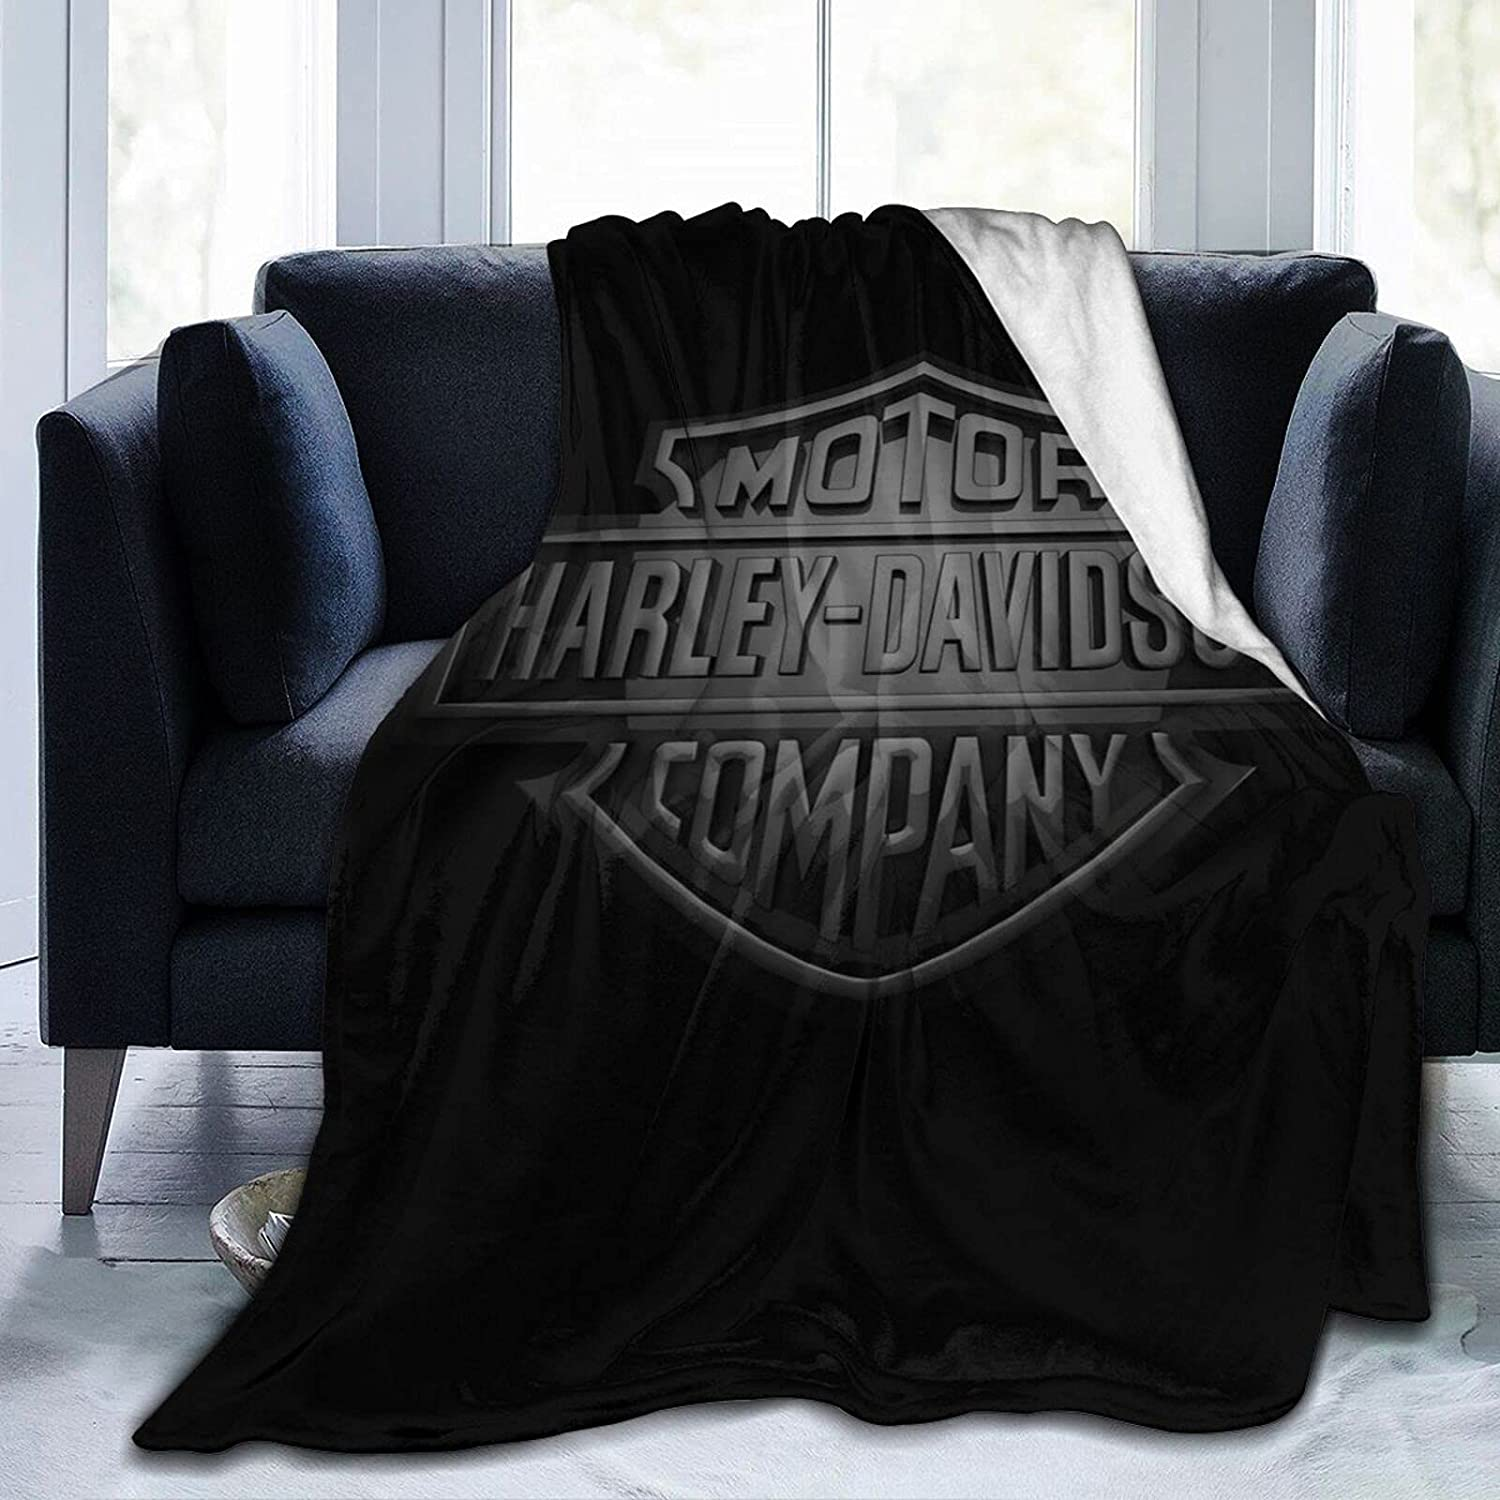 Harley Davidson Ultra-Soft Micro Fleece Blanket,Home Decor Warm Throw Blanket for Couch Bed(50